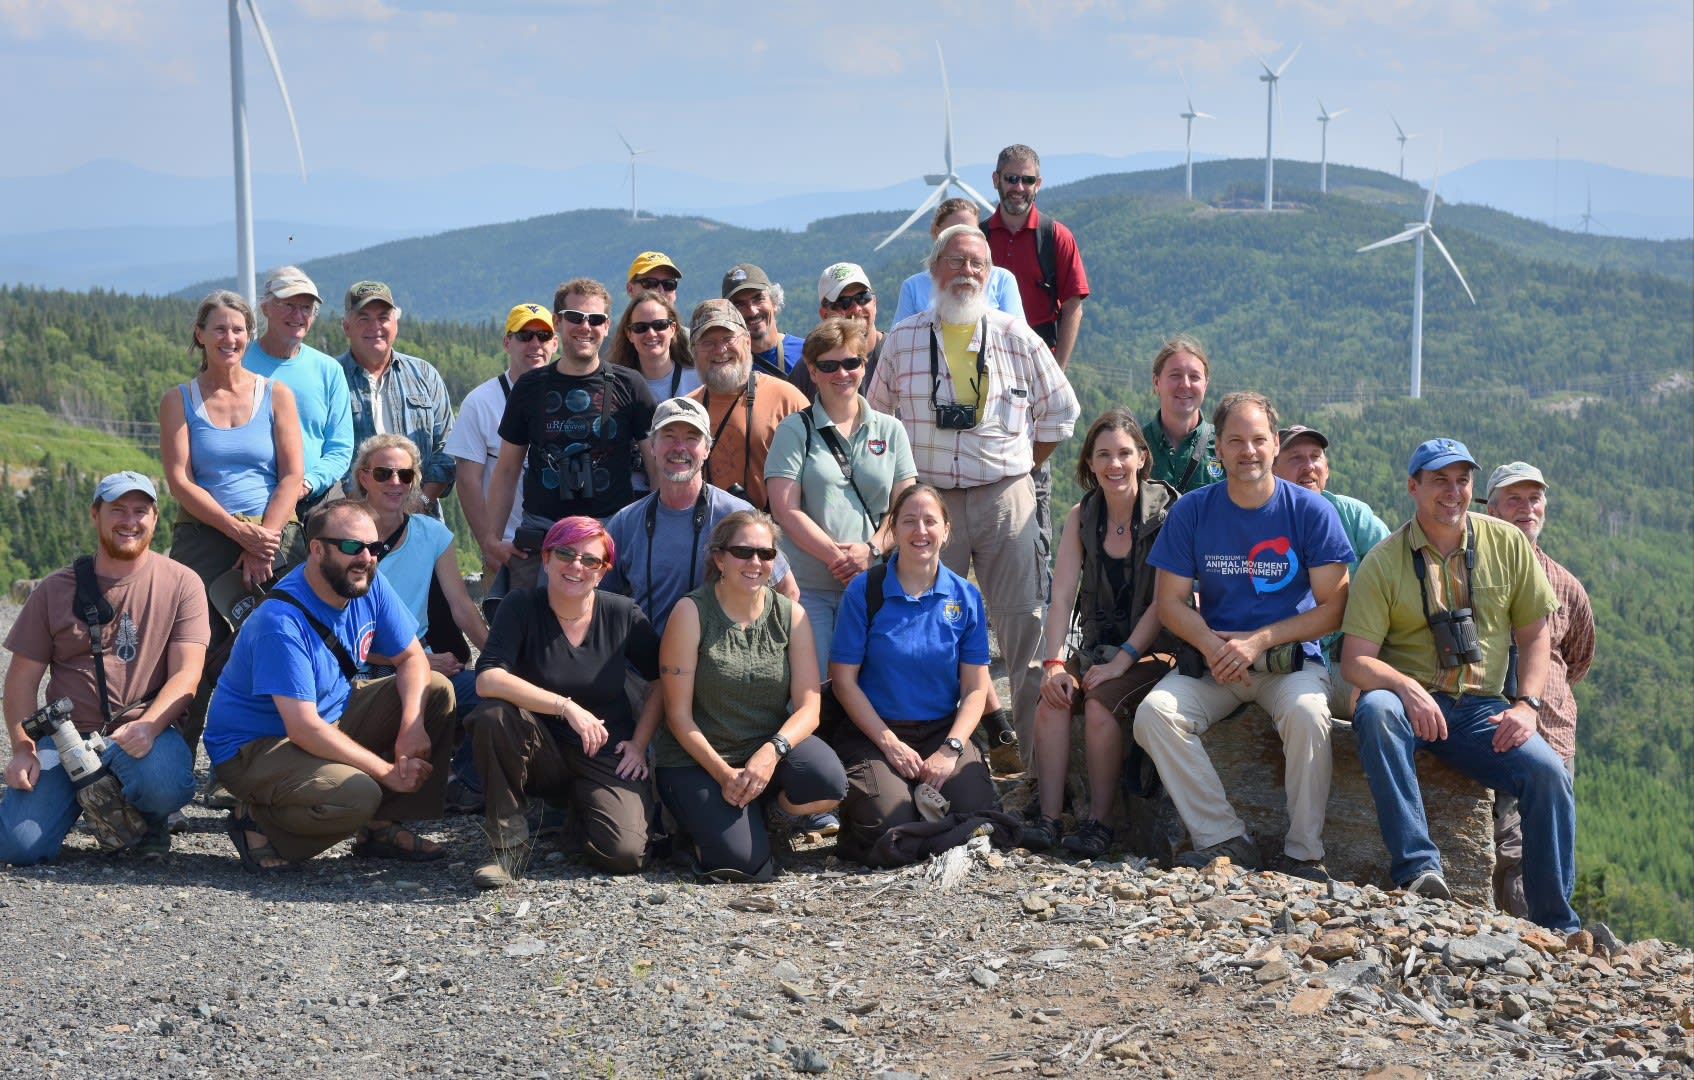 The group is shown during a field trip to a wind farm. Peg standing far left. Tom kneeling center second row. Dr. Todd Katzner stands above all others in the red shirt. Photo by Craig Koppie.